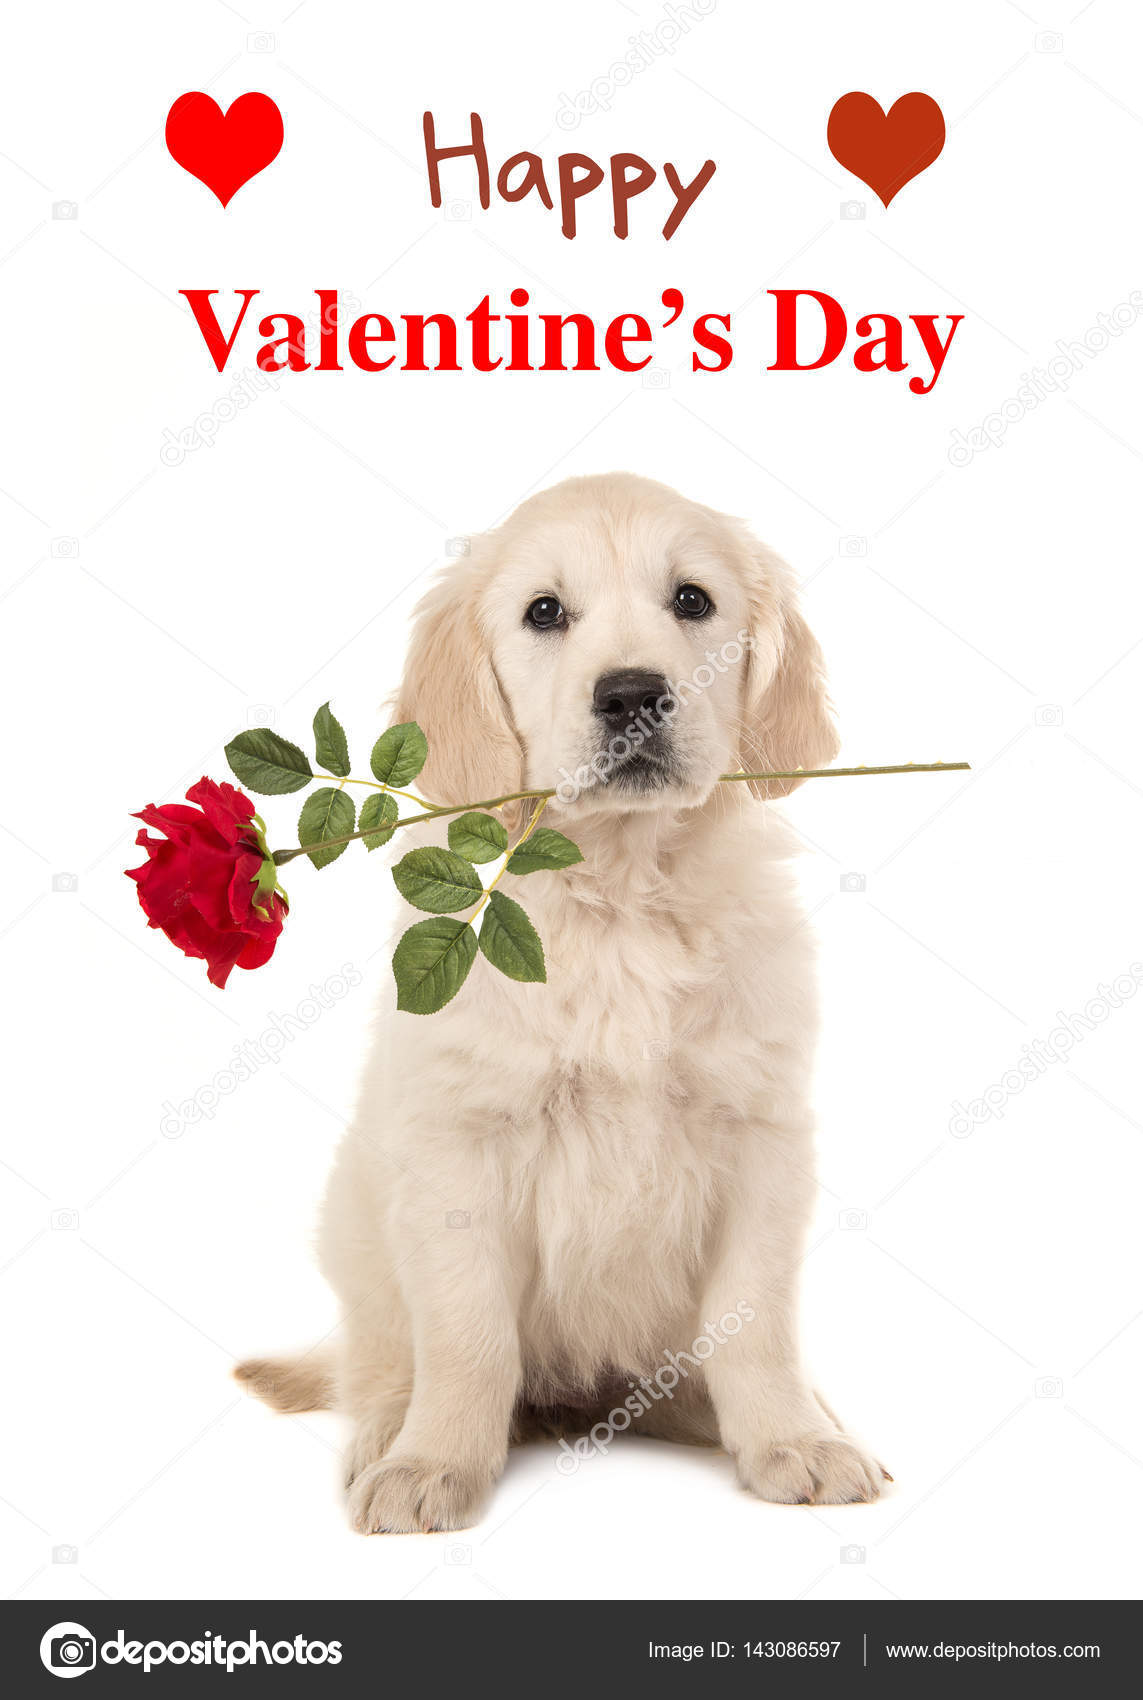 Cute Sitting Golden Retriever Puppy Dog Holding A Red Rose In His Mouth  Facing The Camera On A White Background With Text Happy Valentineu0027s Day As  A Wishing ...